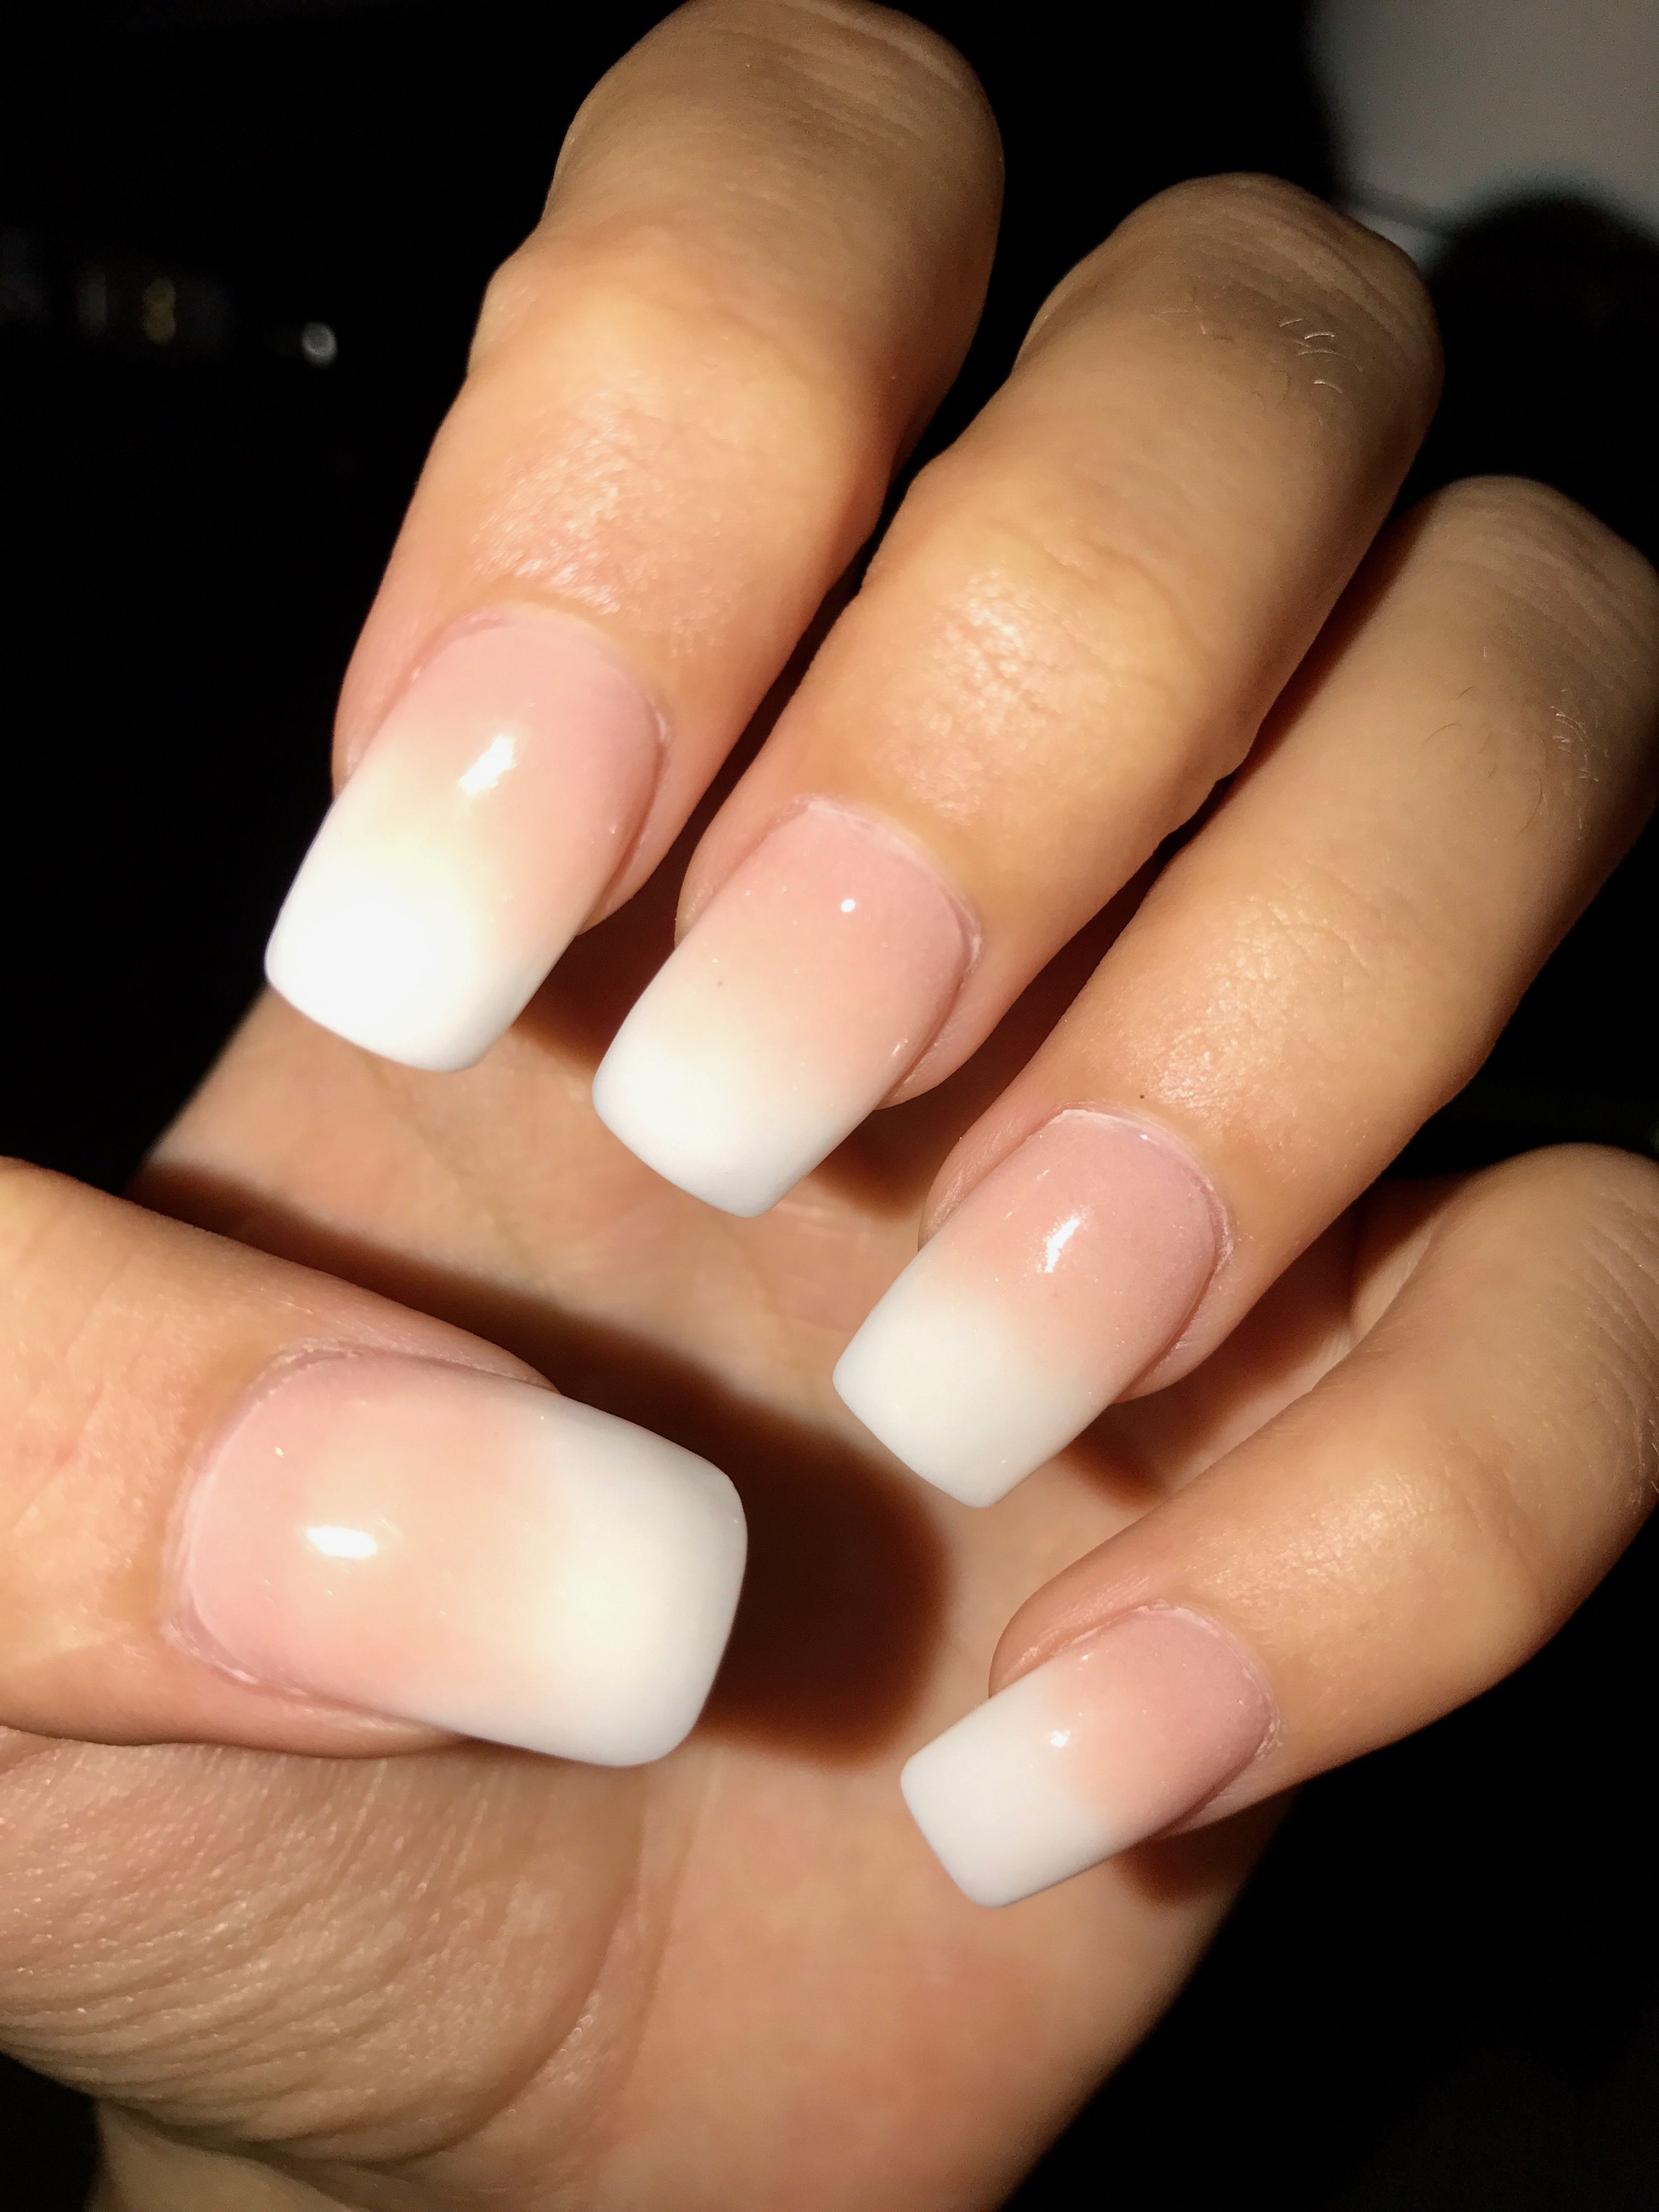 French fade white tip gel nails #ombre #acrylics, #milky #french ...